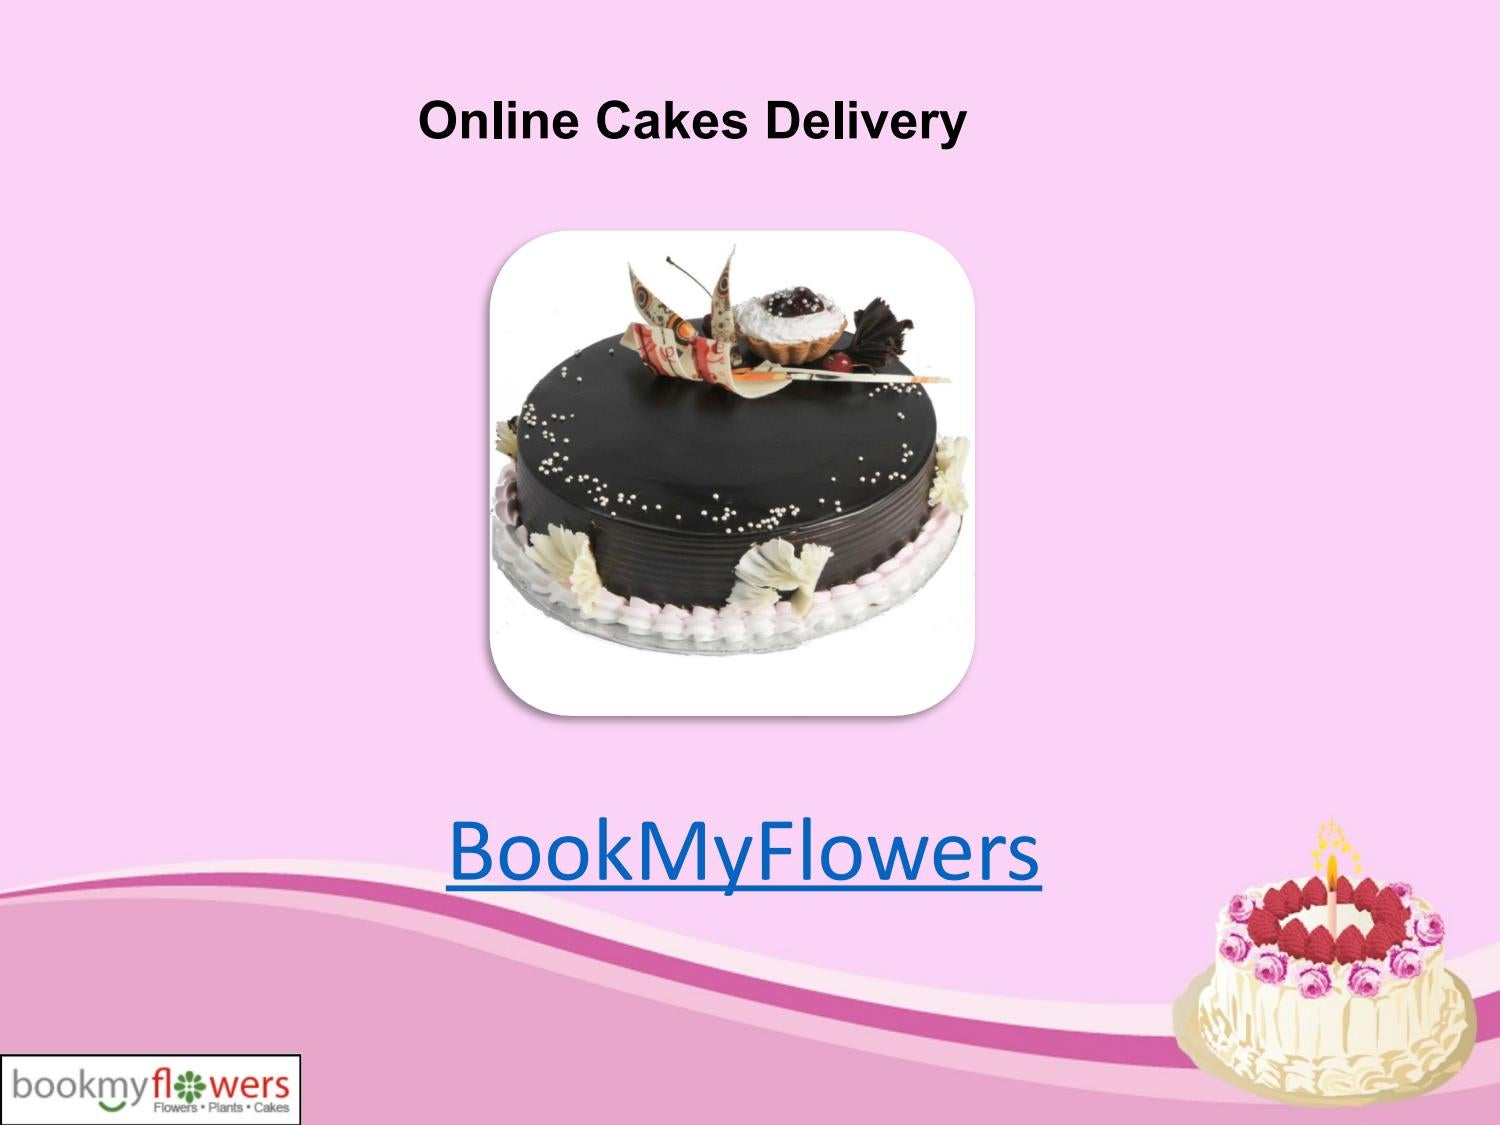 Get The Best Flavours For Your Birthday Cake By BookMyFlowers